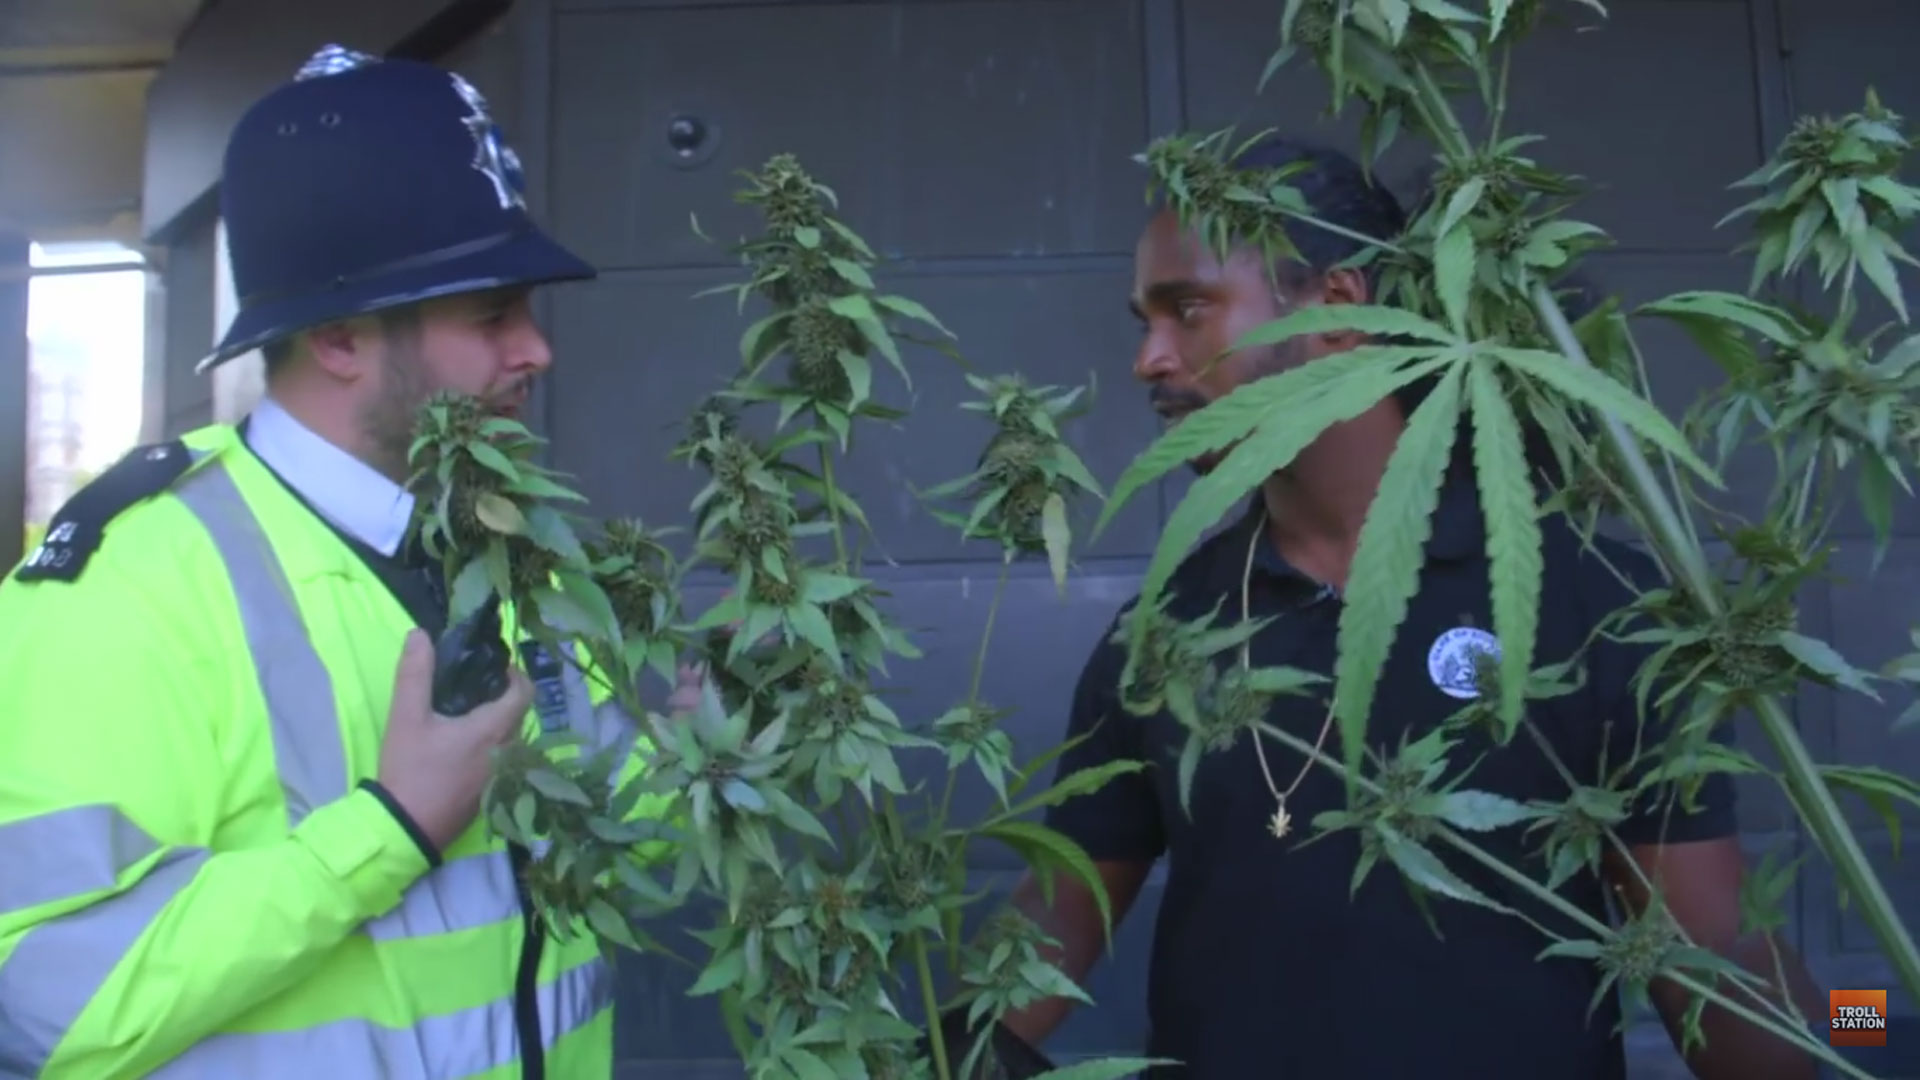 Pot TV | Marijuana Video		Cannabis Plants In Public With Black the Ripper